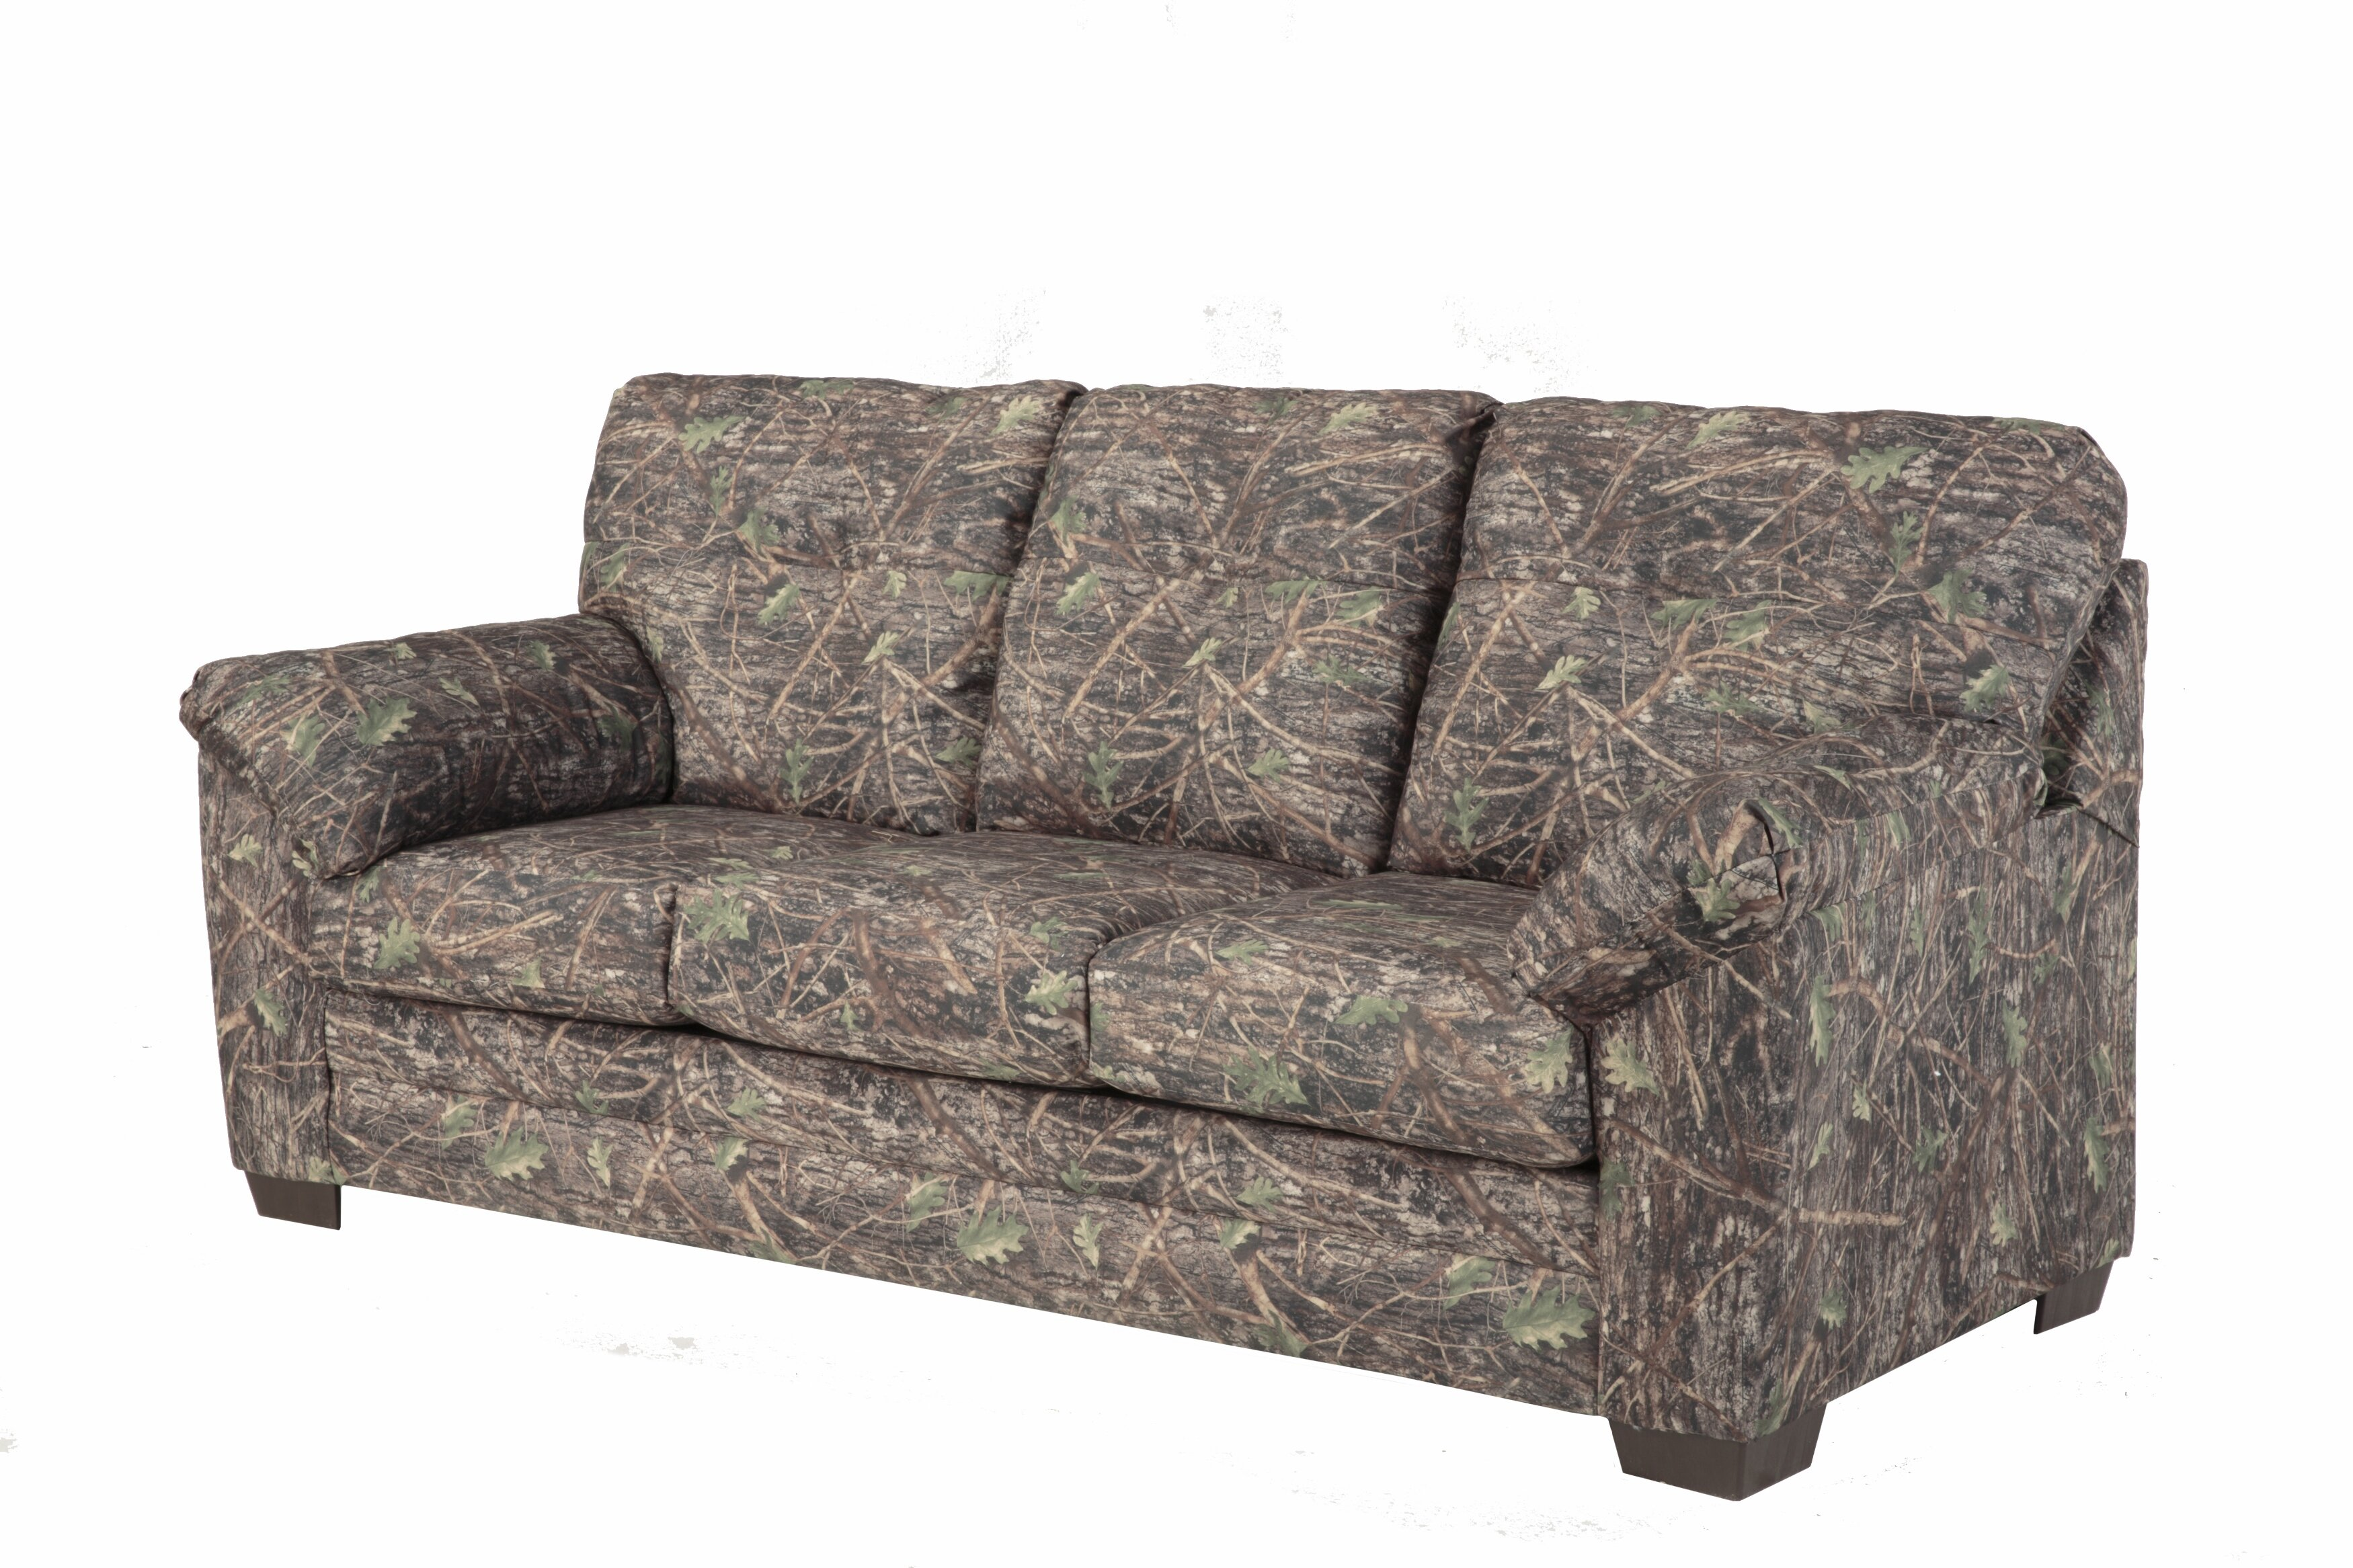 American Furniture Classics Camouflage Sleeper Sofa | Wayfair